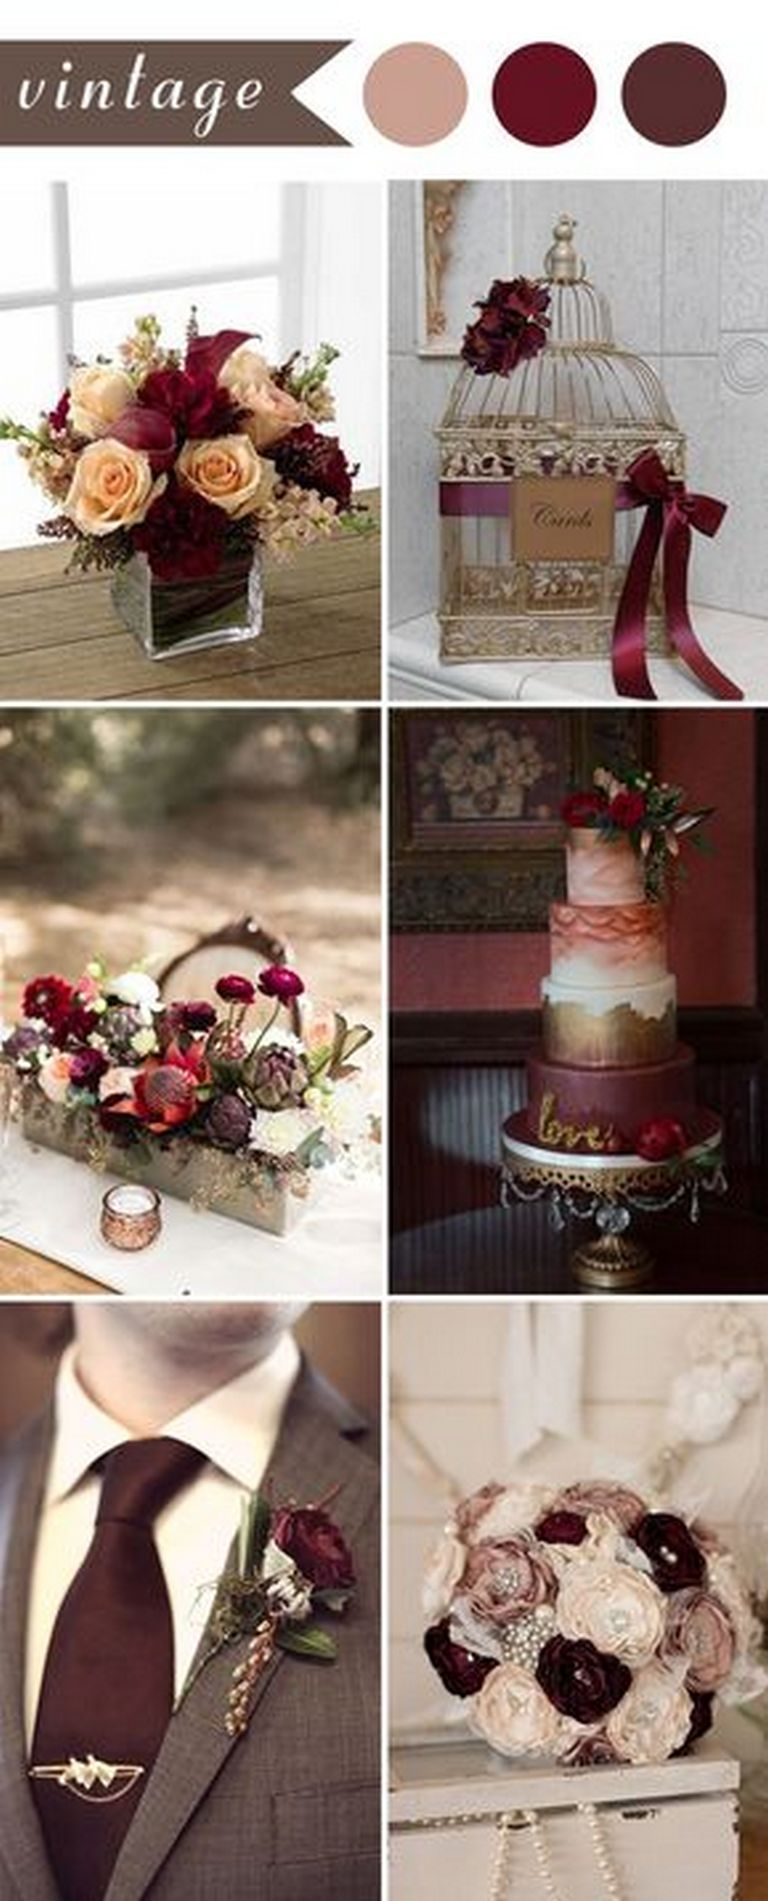 Vintage Wedding Ideas with the Coolest Party  You ve Churches